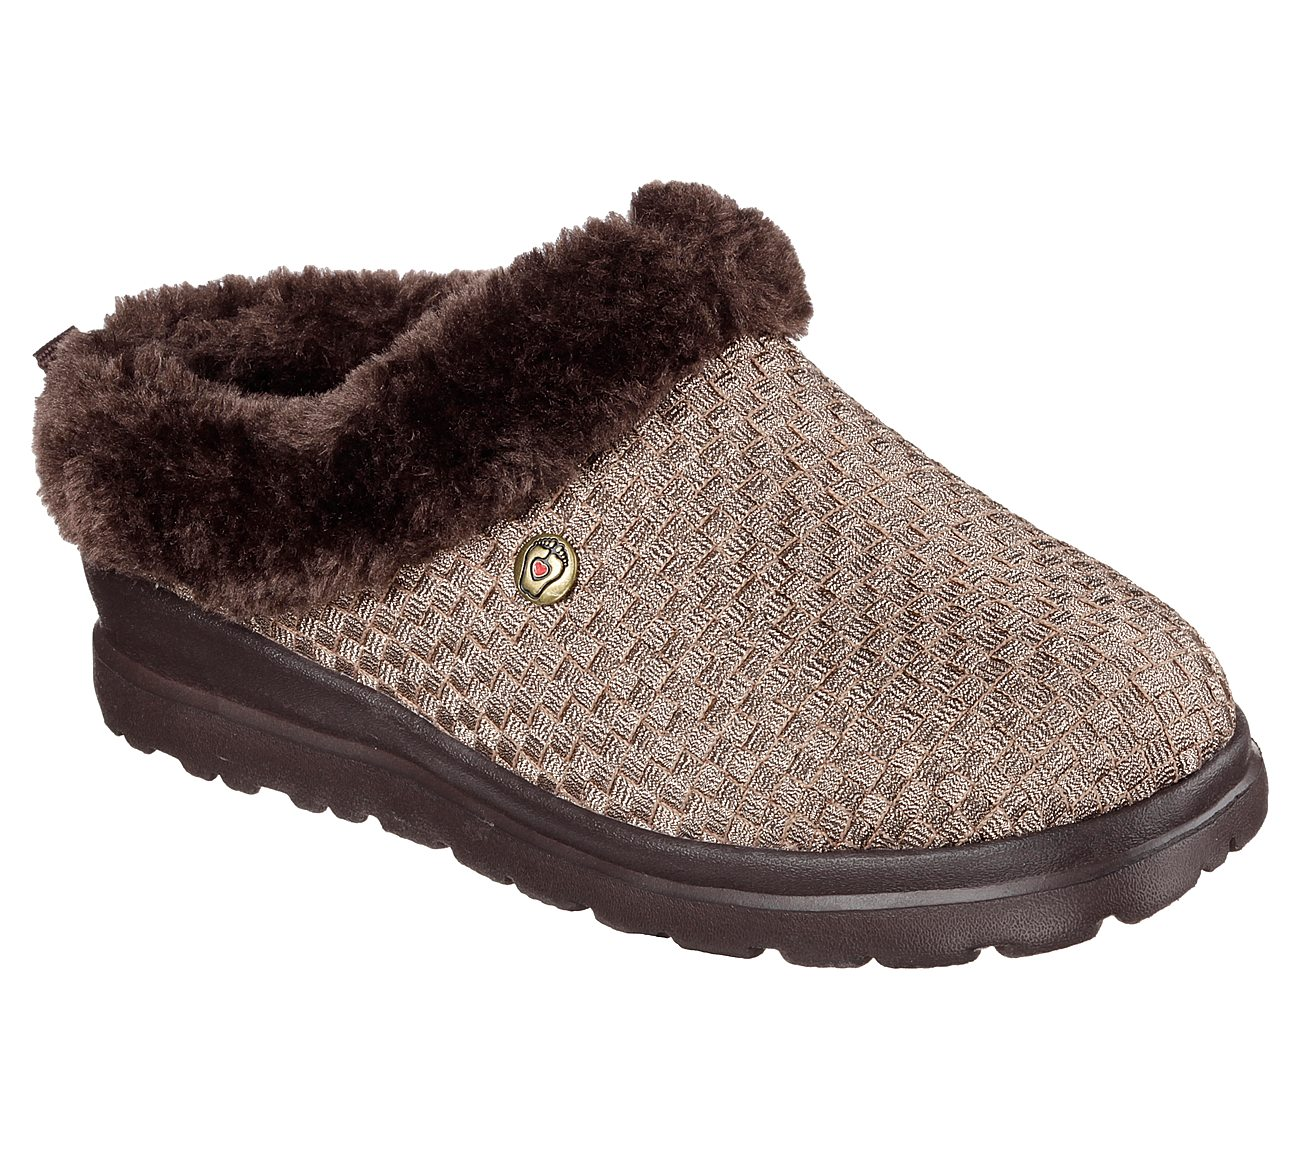 New Style Bobs From Skechers Cherish Snugglers Slipper